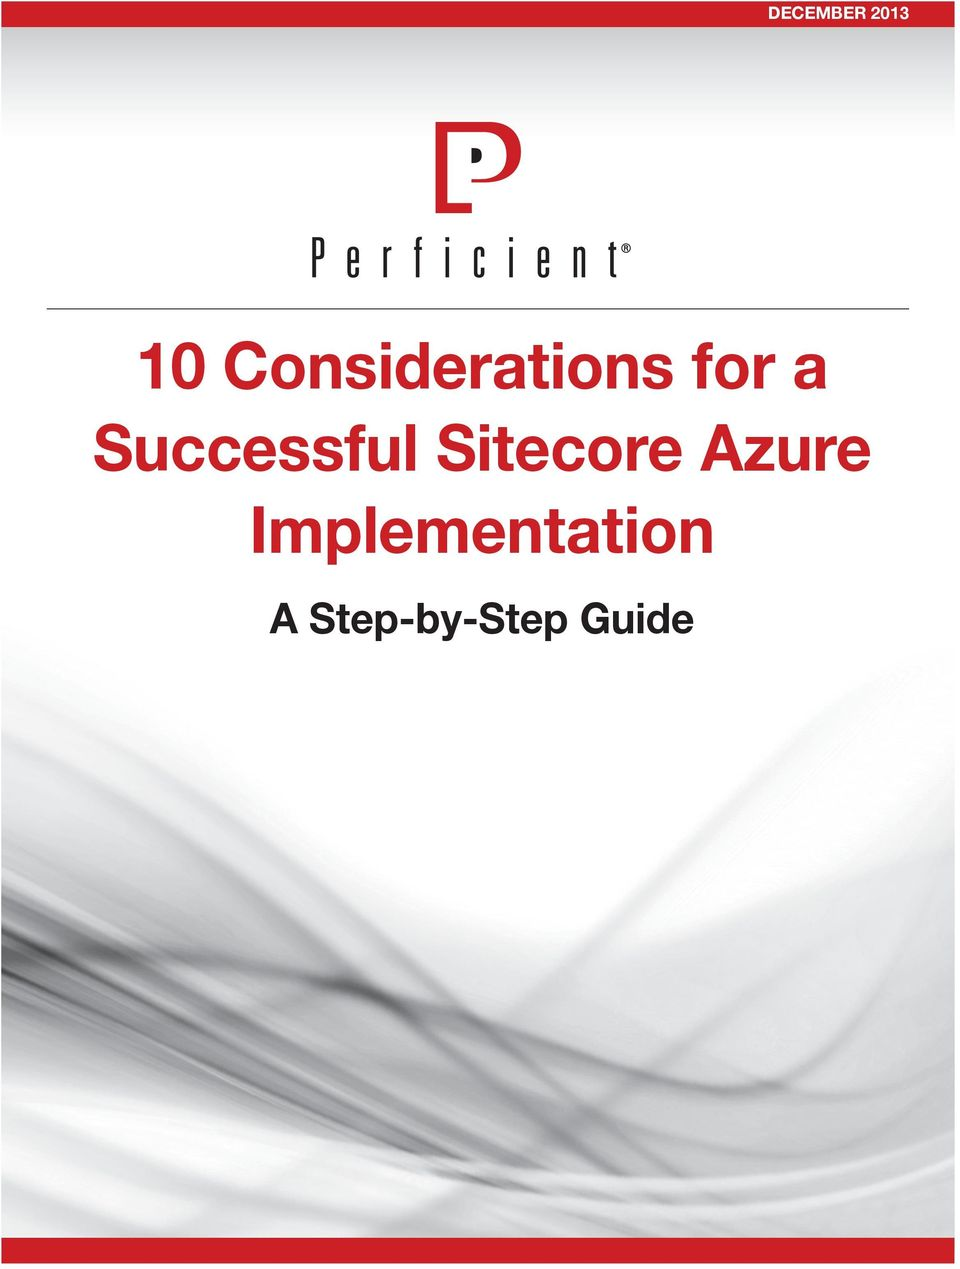 10 Considerations for a Successful Sitecore Azure